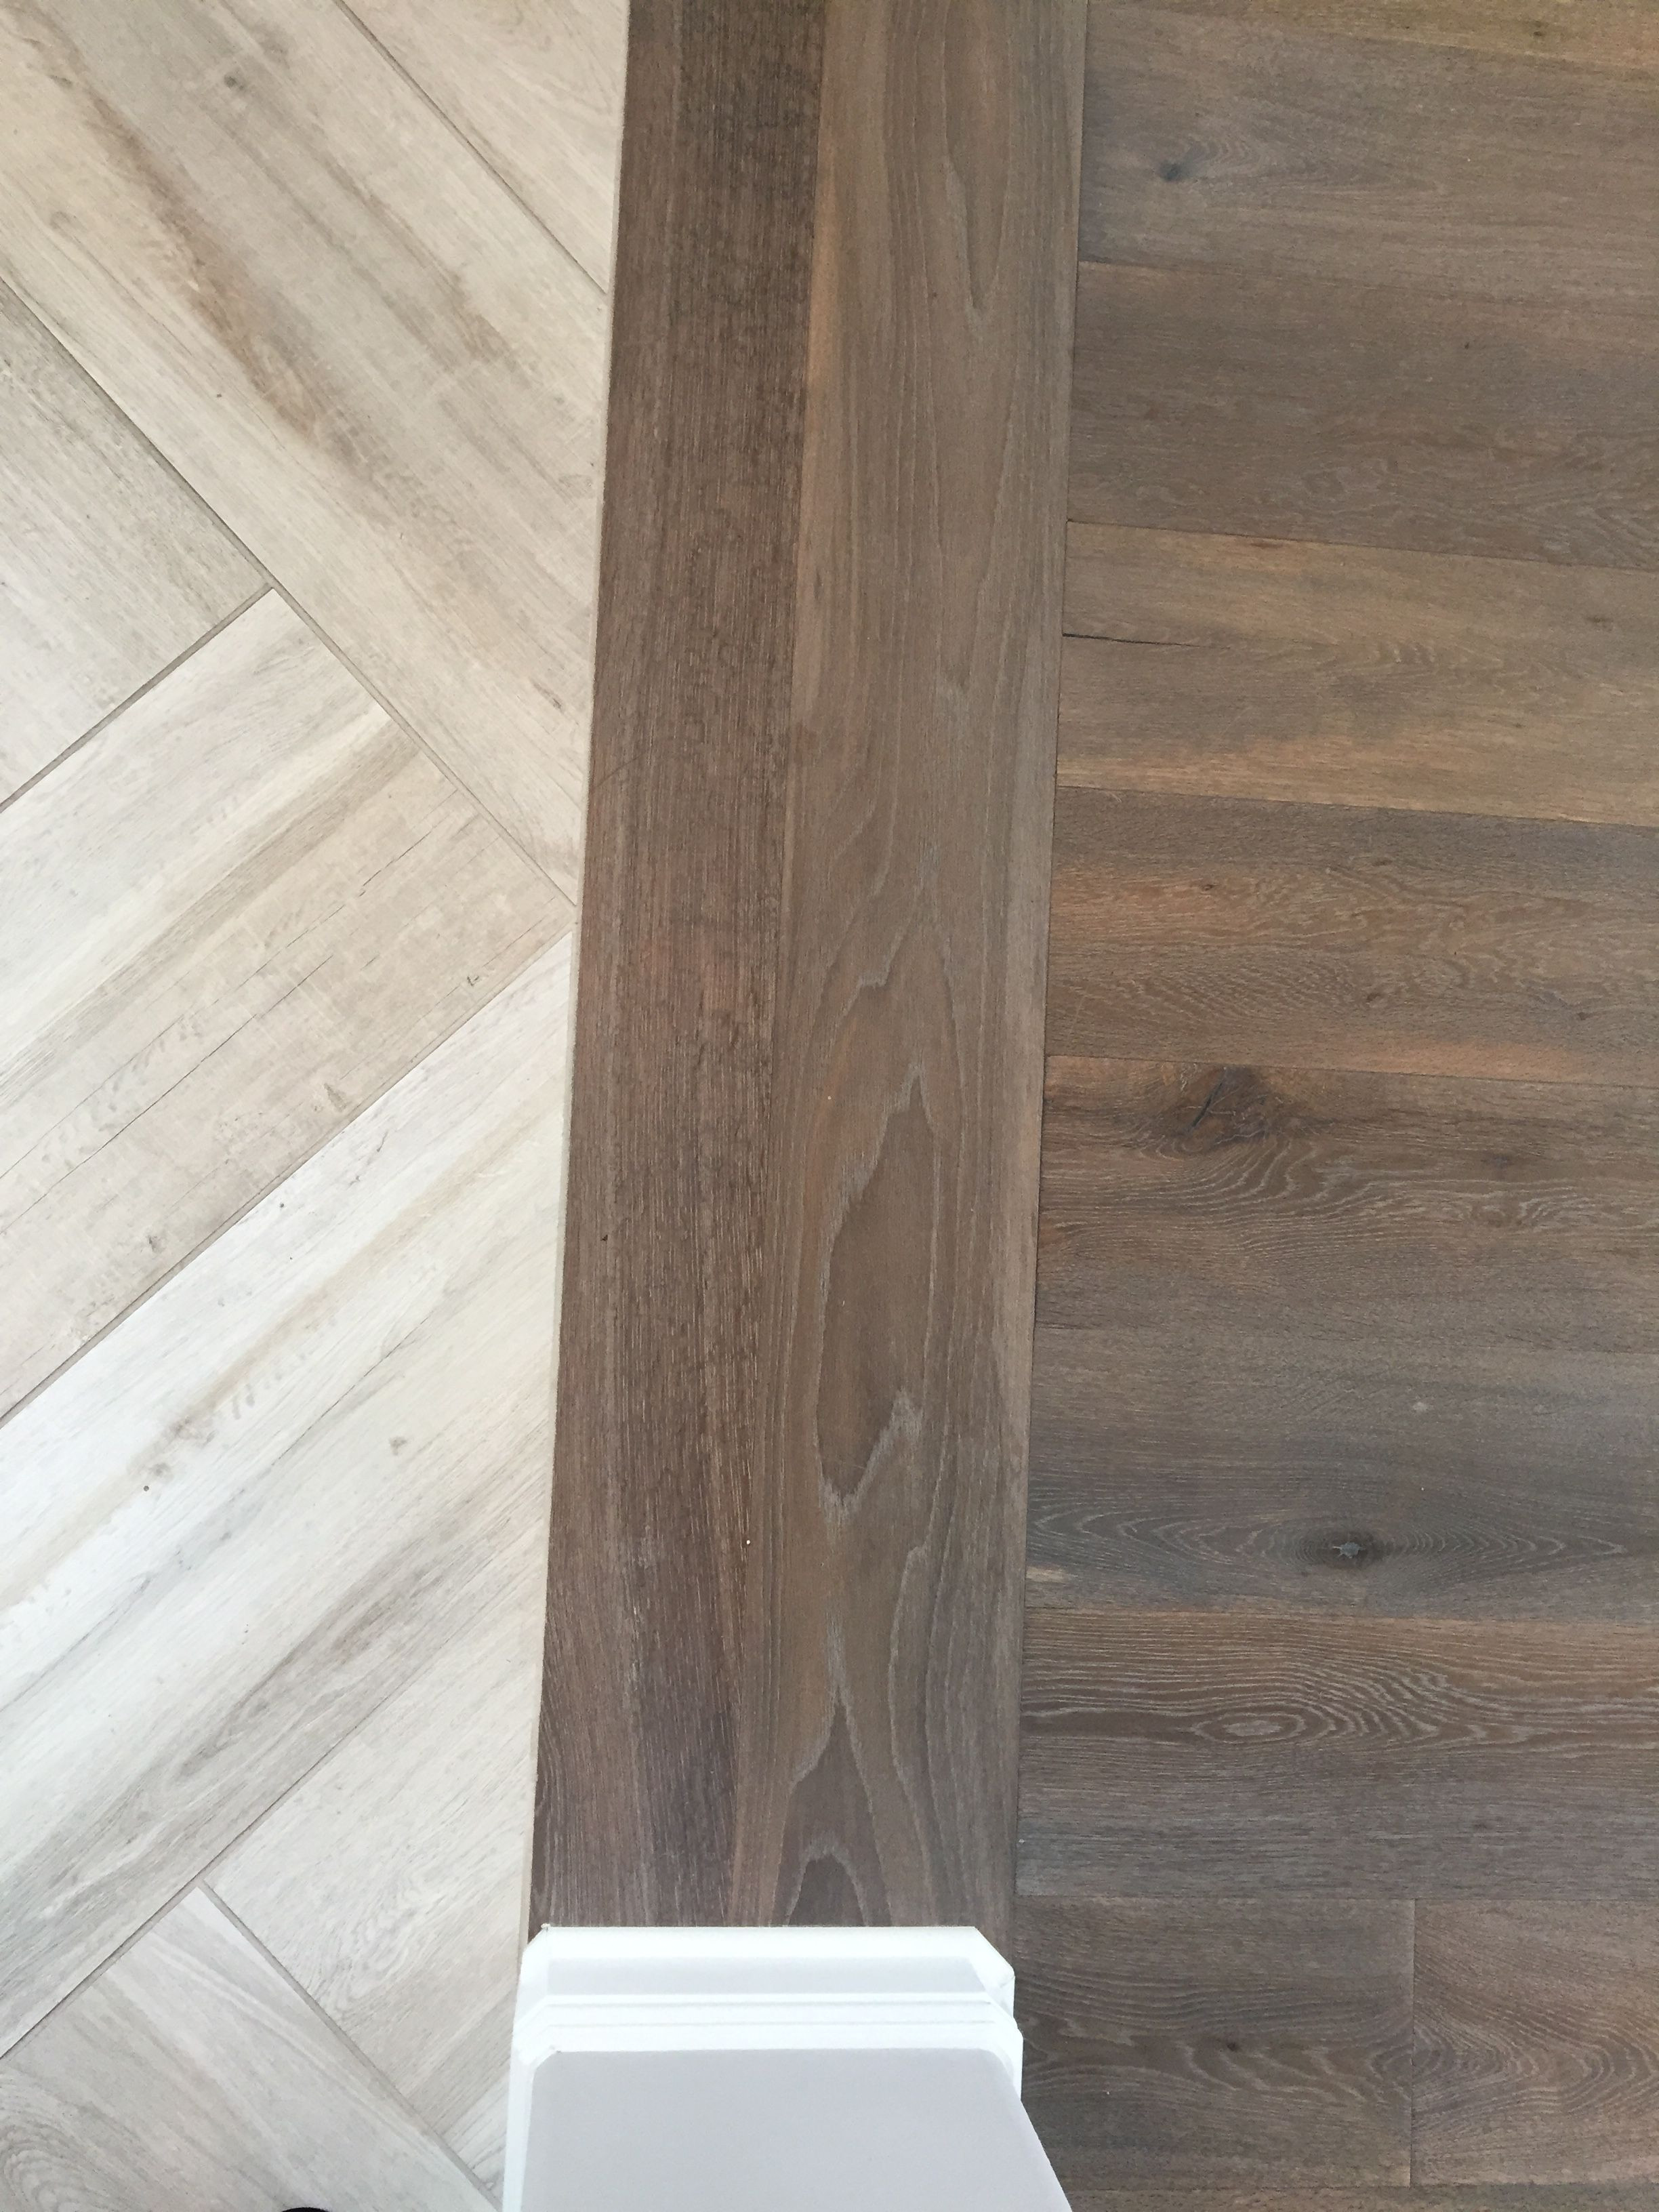 How to Lay Engineered Hardwood Flooring On Concrete Of Floor Transition Laminate to Herringbone Tile Pattern Model Regarding Floor Transition Laminate to Herringbone Tile Pattern Herringbone Tile Pattern Herringbone Wood Floor